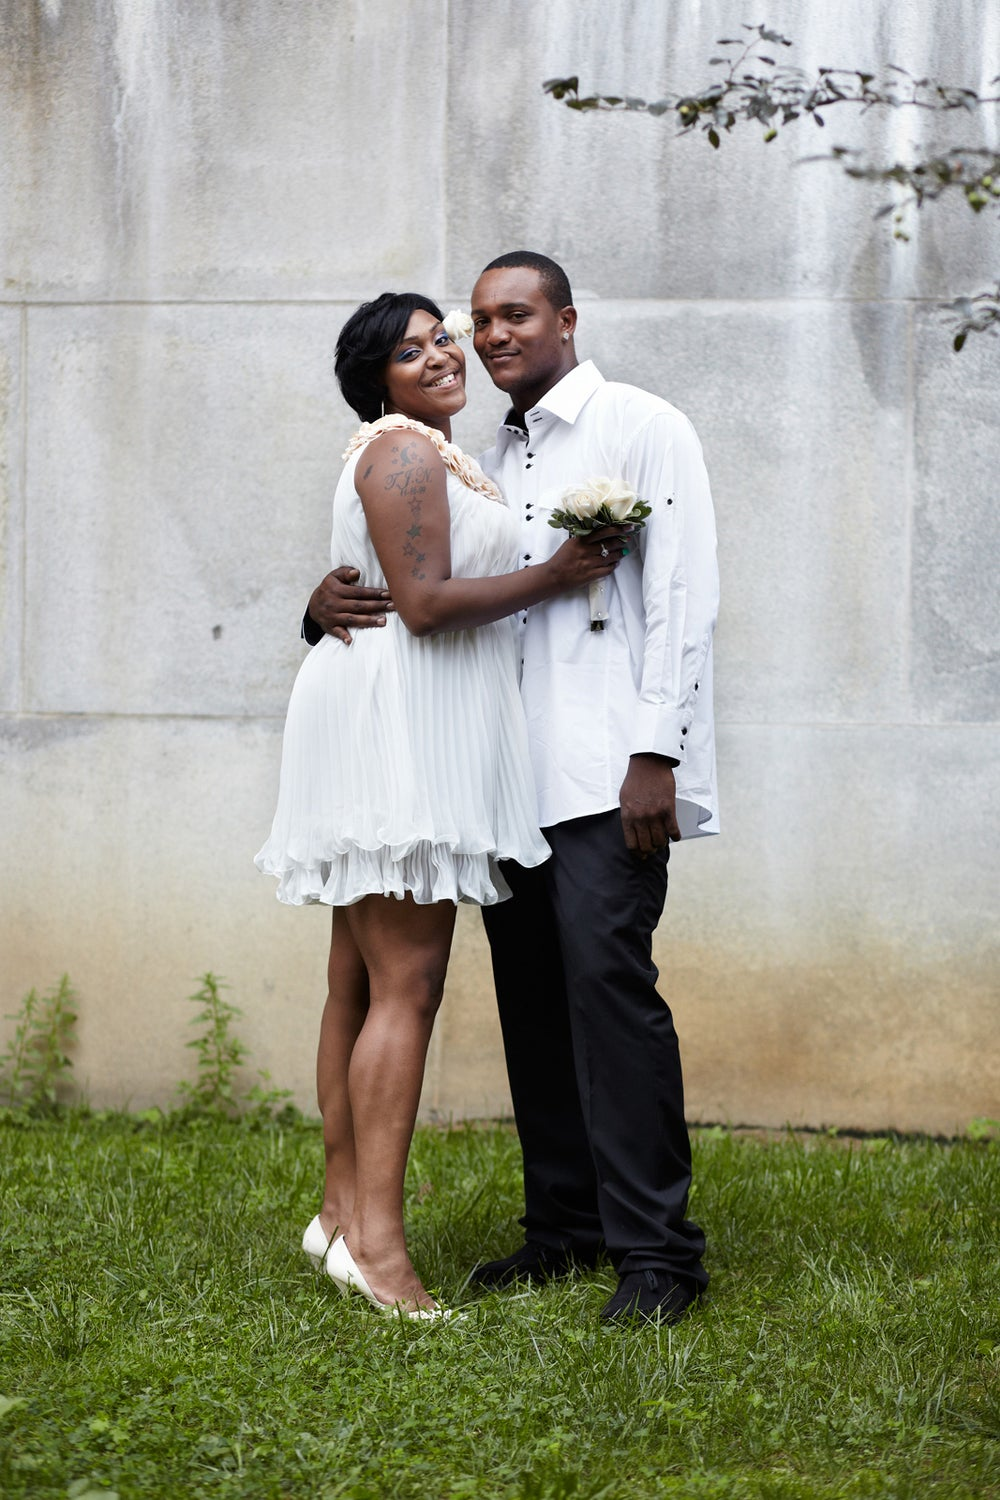 Job developer Takiya Ross and construction worker Blondell Ross met at a mutual friend's party.